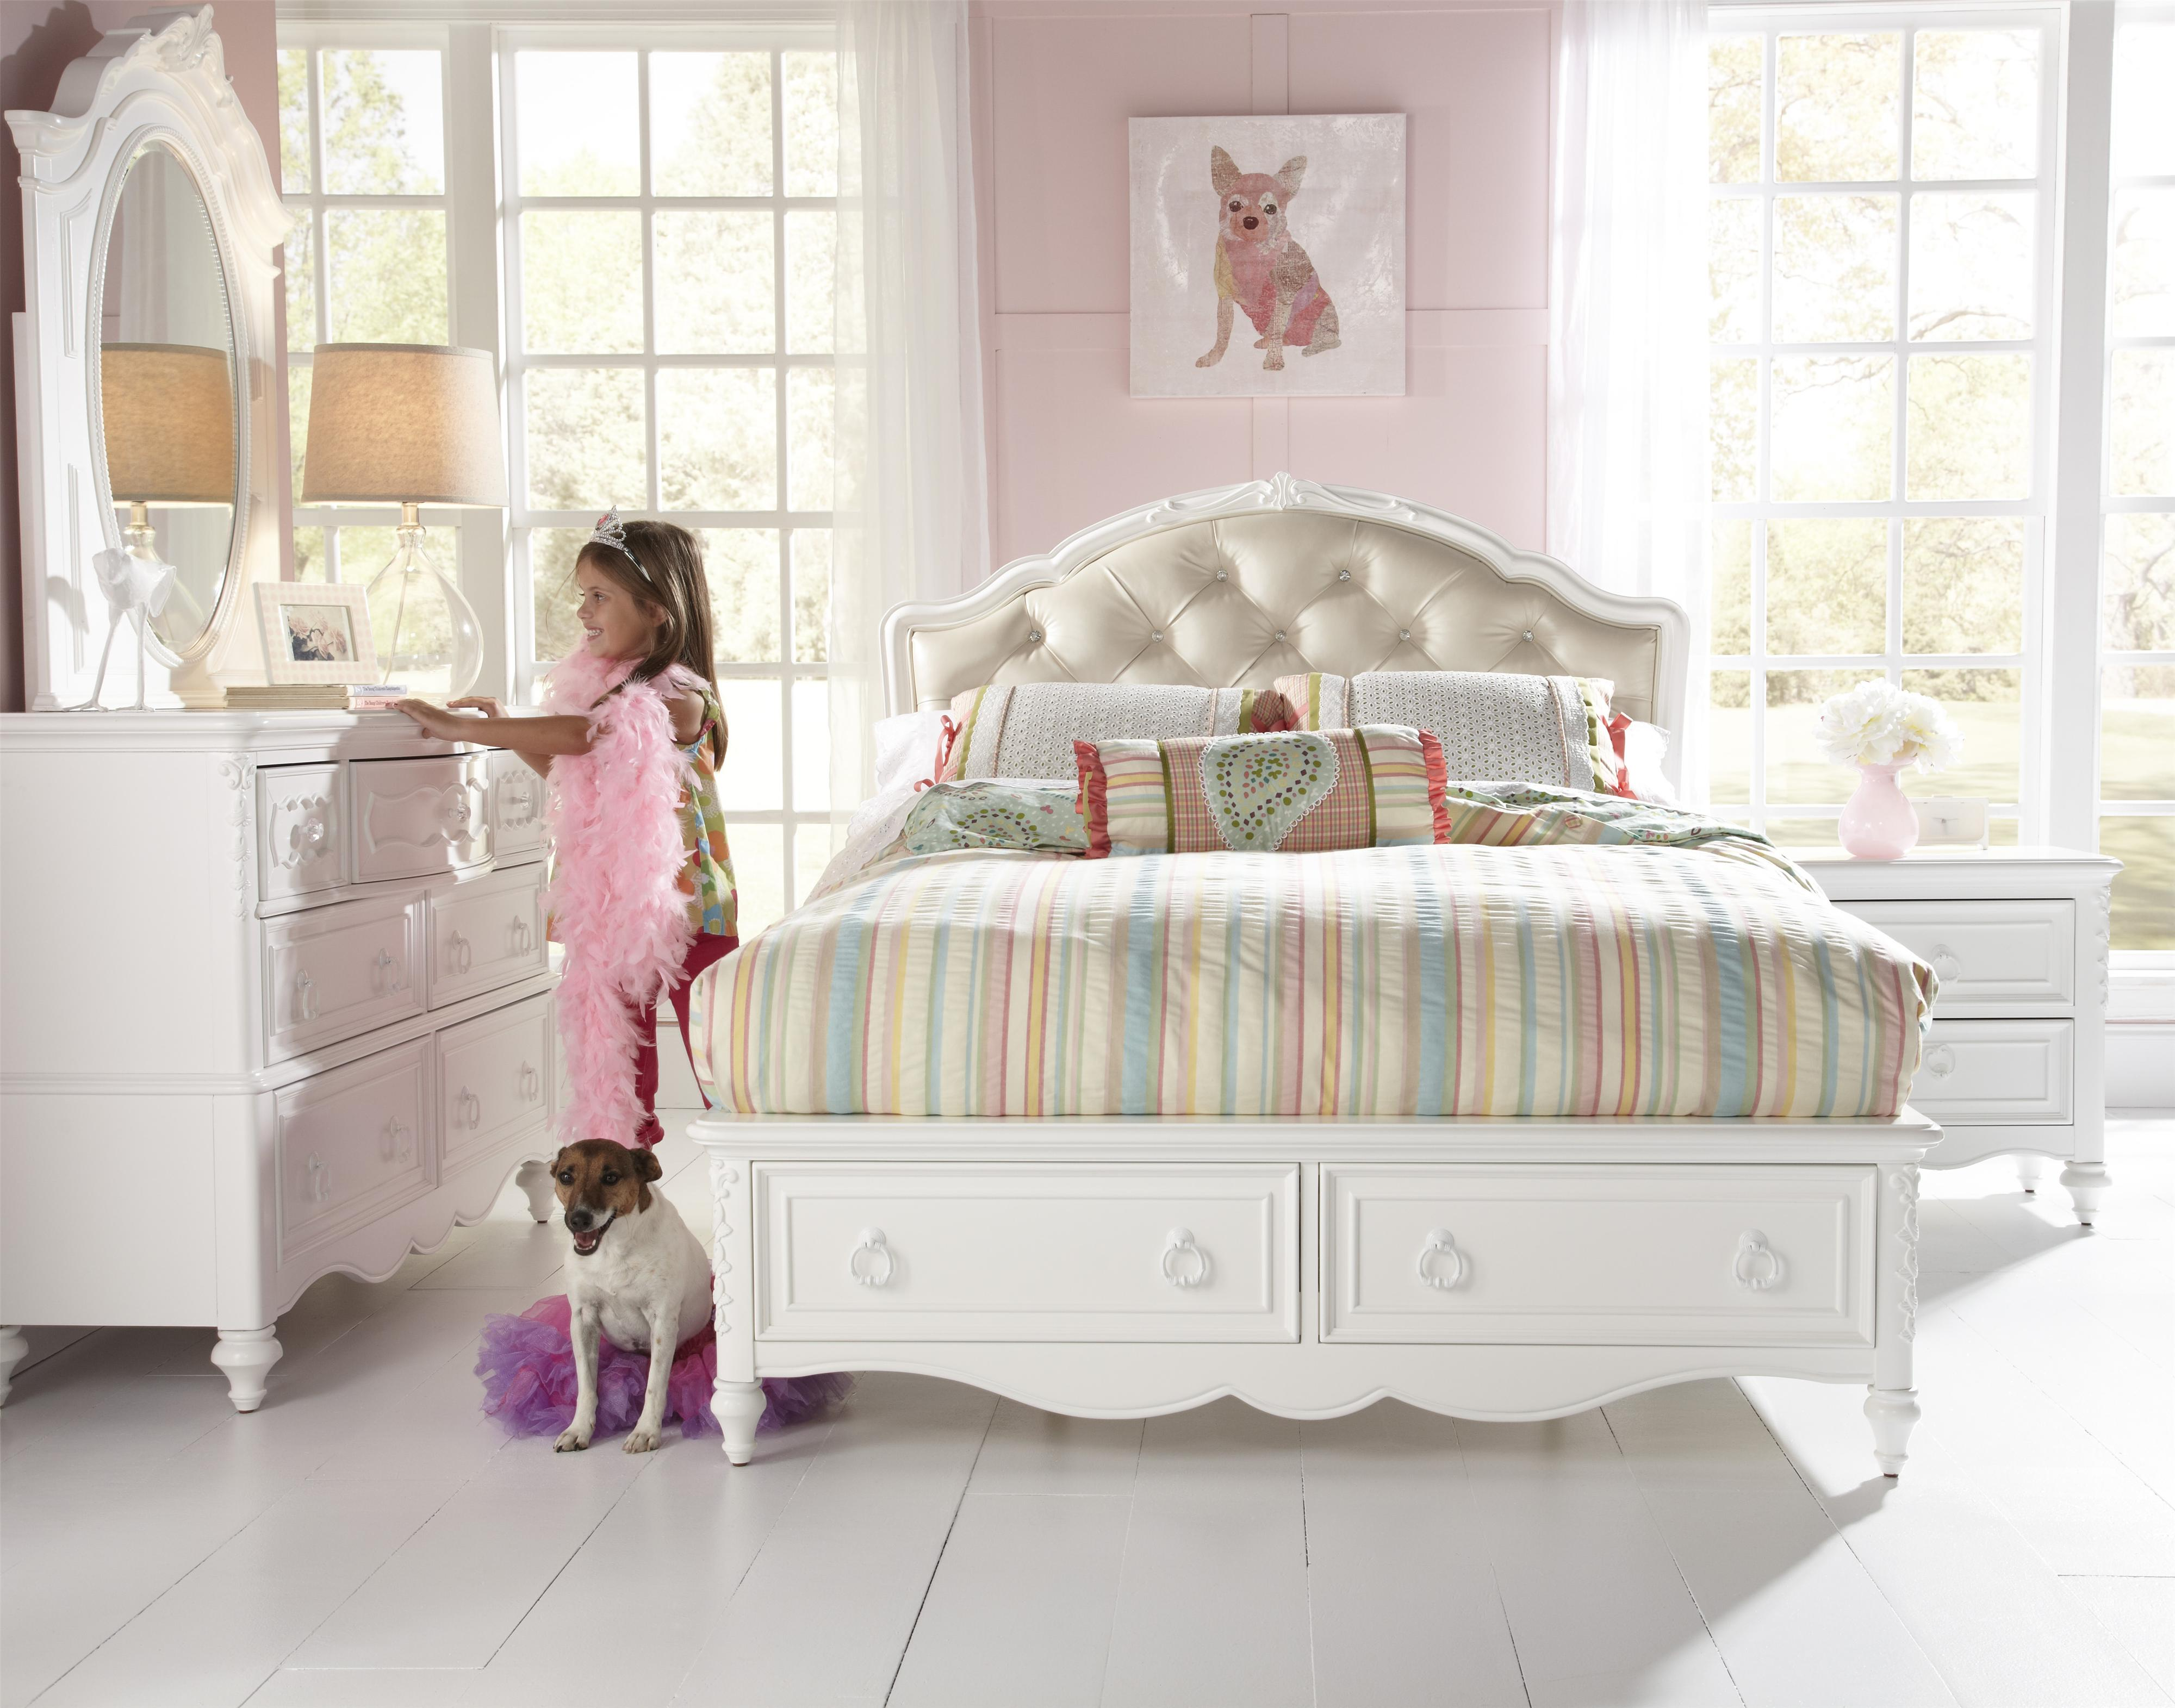 cutest bedroom within the set furniture decor image small cinderella princess with fences of simple peiranos